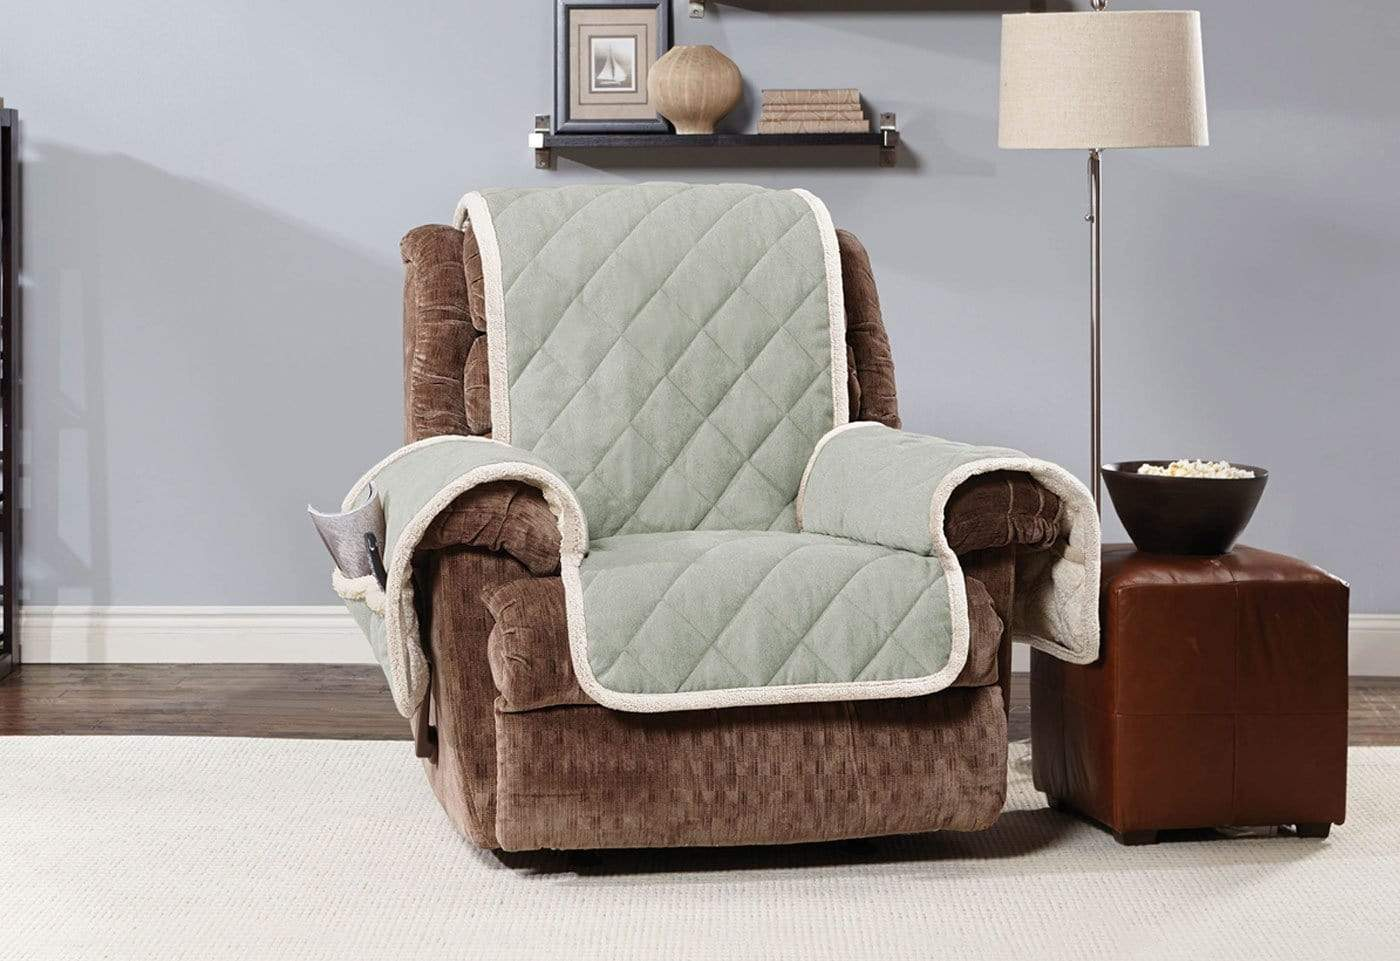 Soft Suede & Sherpa Recliner Furniture Cover 100% Polyester Pet Furniture Cover Machine Washable - Recliner / Sage